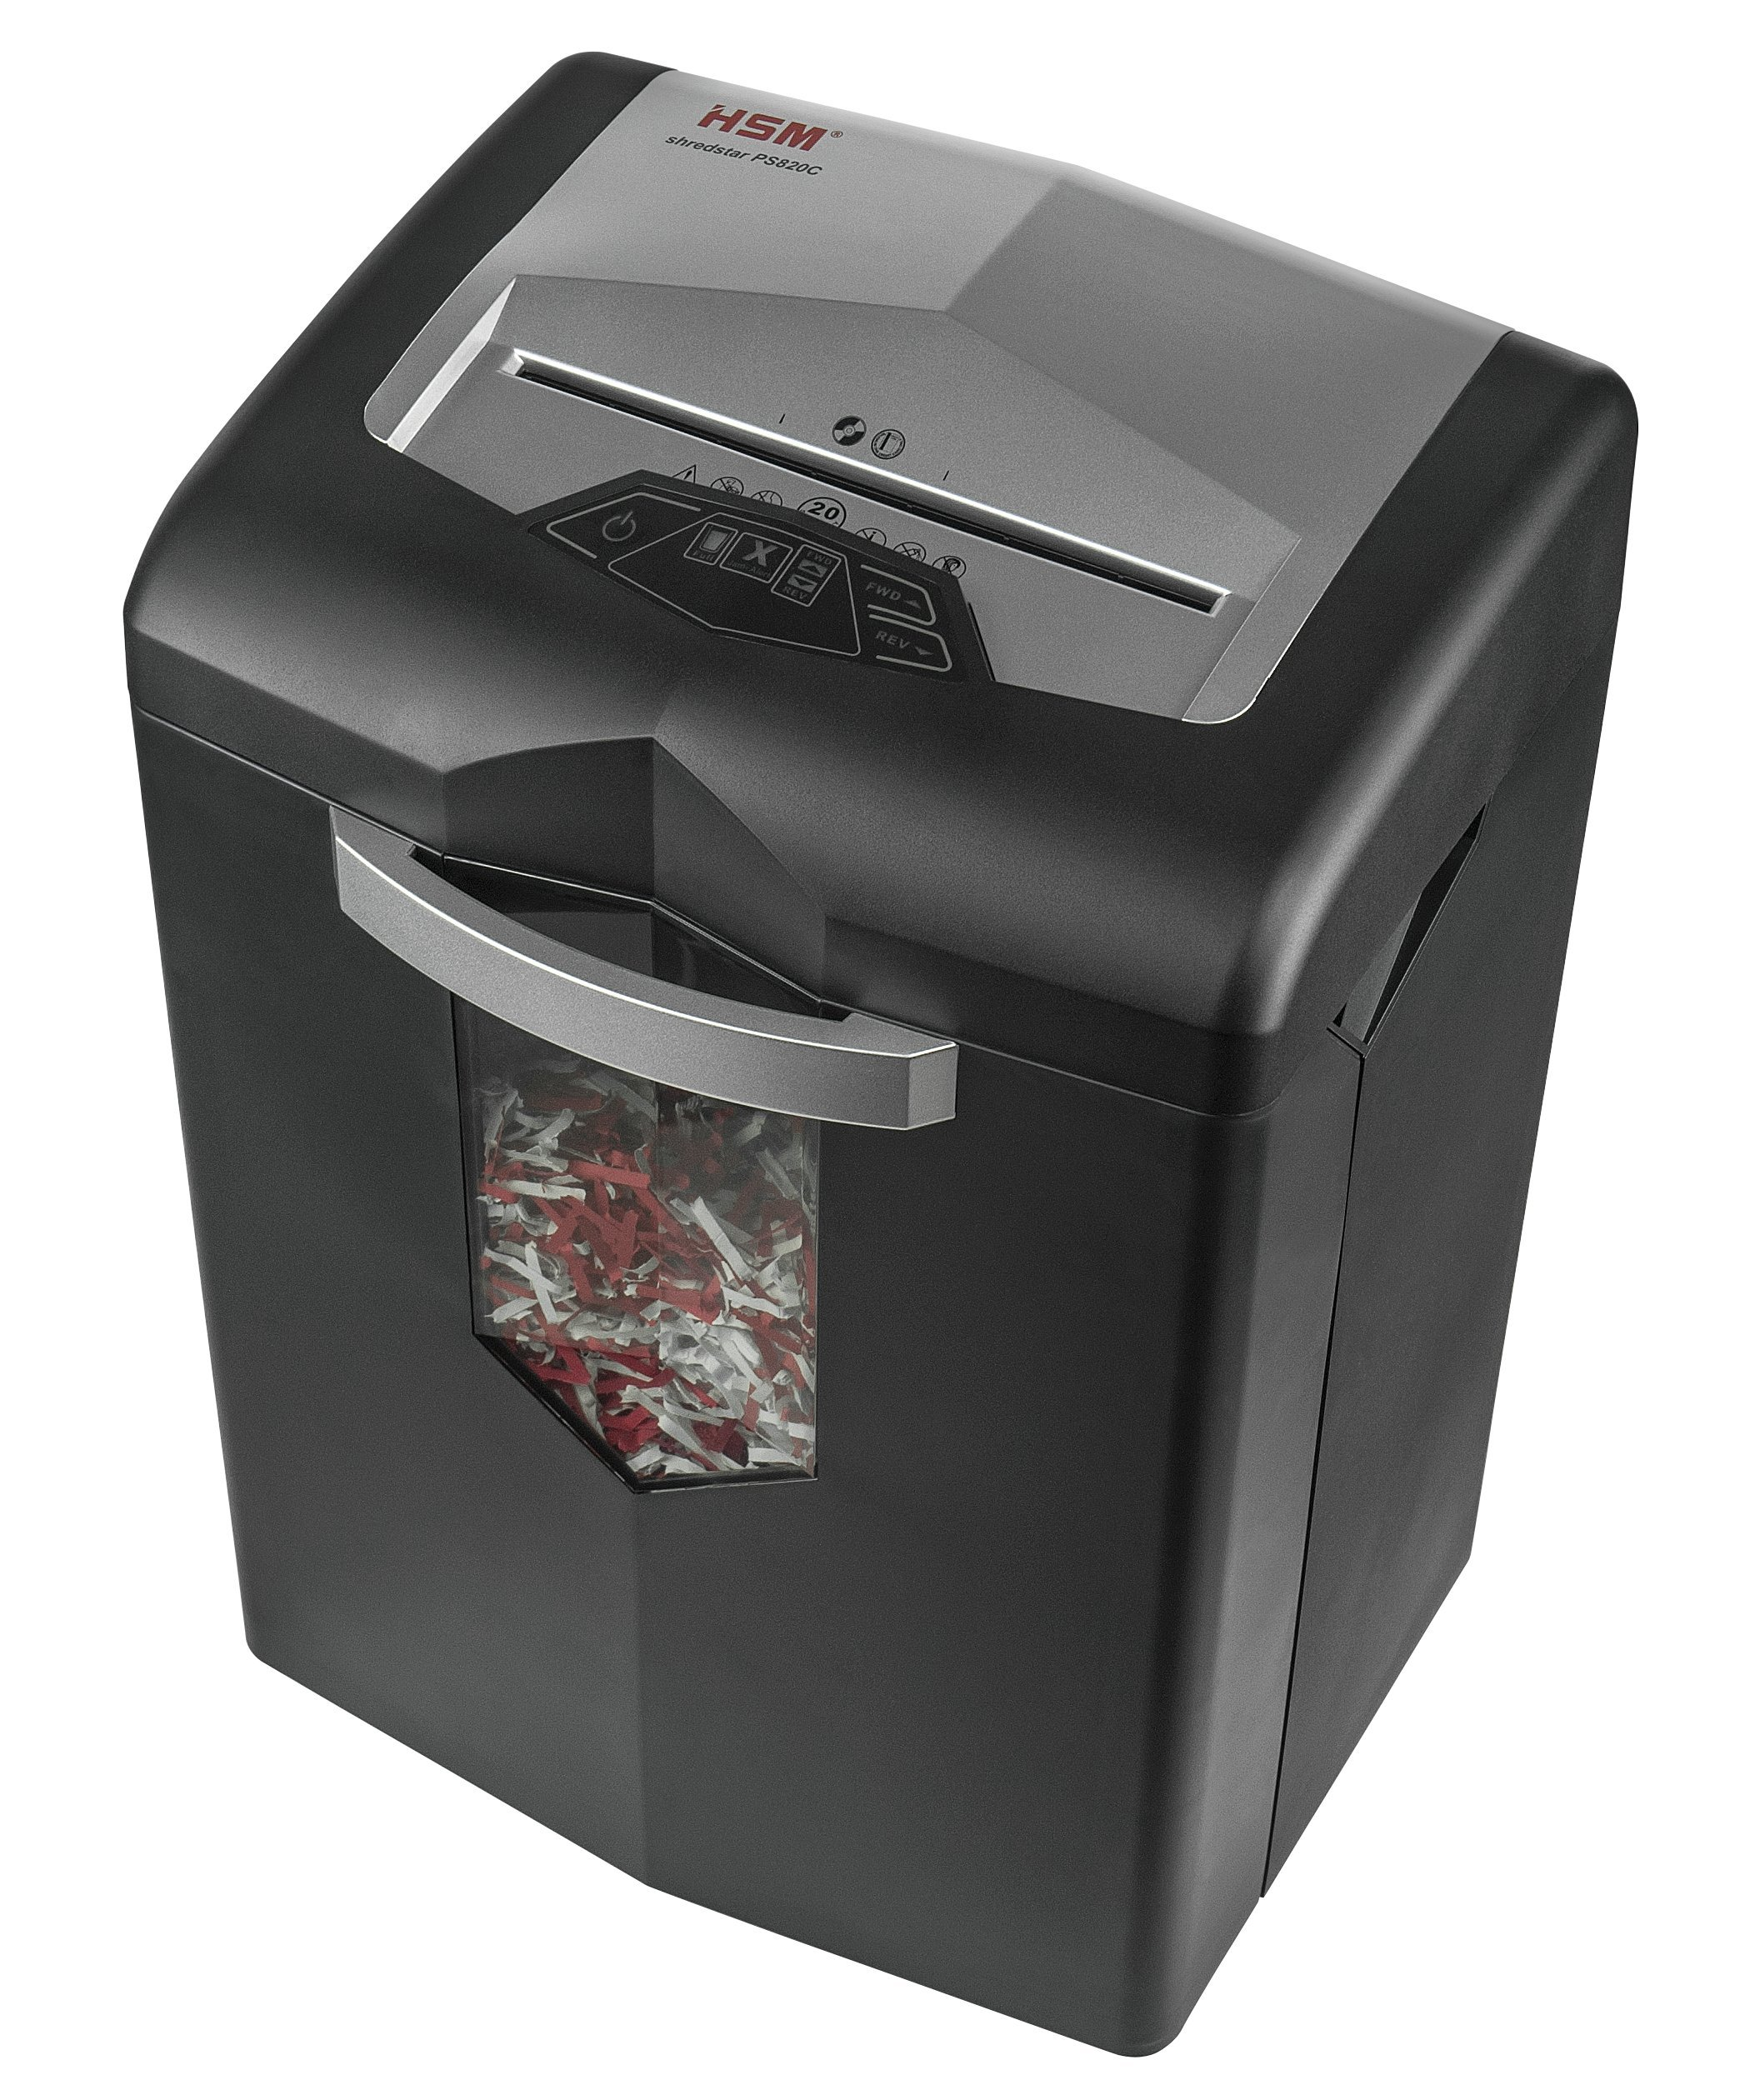 HSM Shredstar PS820C 20-Sheet Cross Cut, 7.1-Gallon Capacity, Continuous Operation Shredder by HSM